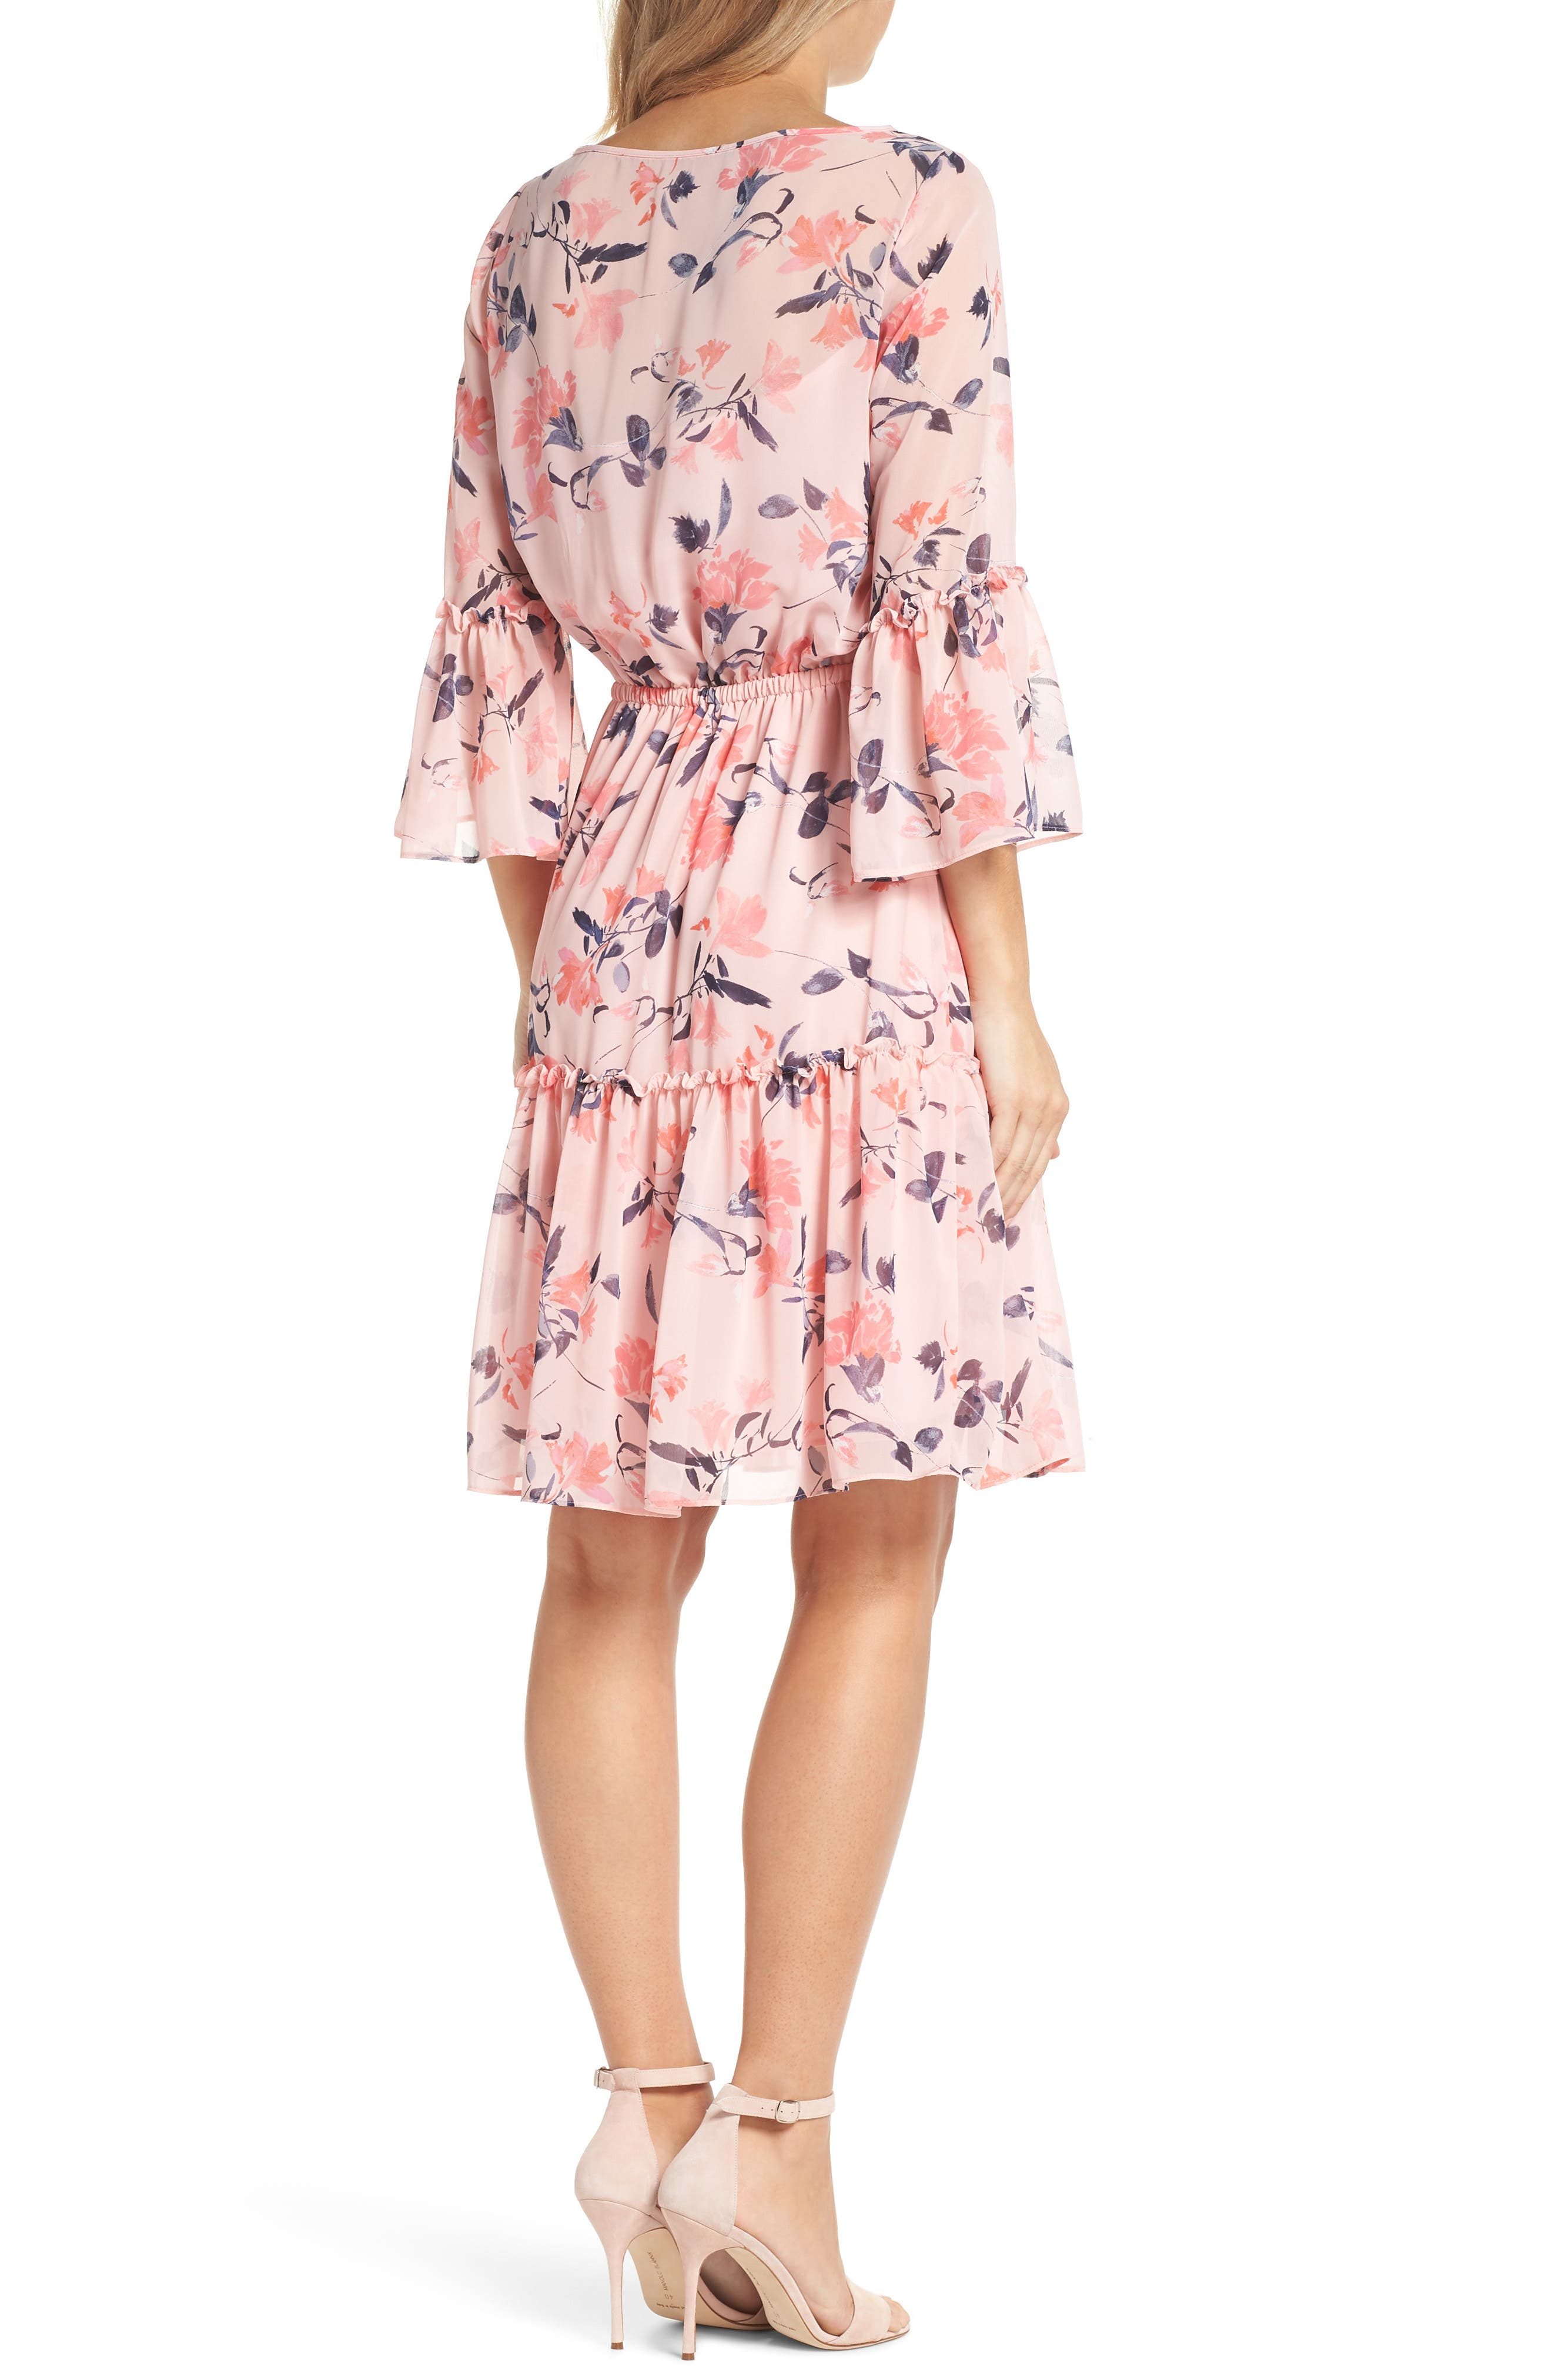 ELIZA J,                             Floral Bell Sleeve Chiffon Dress,                             Alternate thumbnail 2, color,                             684